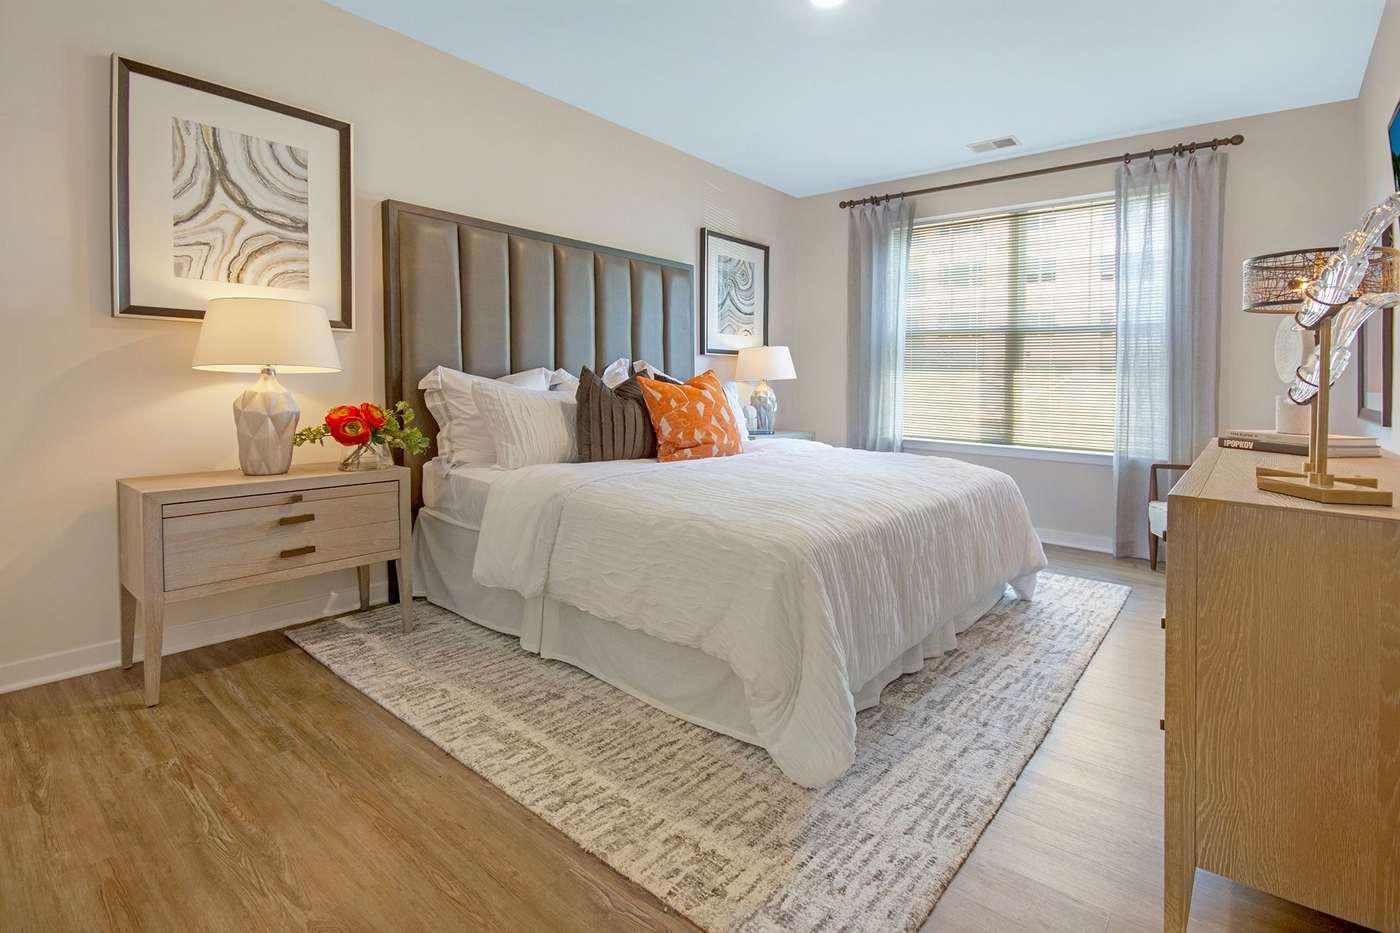 Interior image of an apartment bedroom with furniture